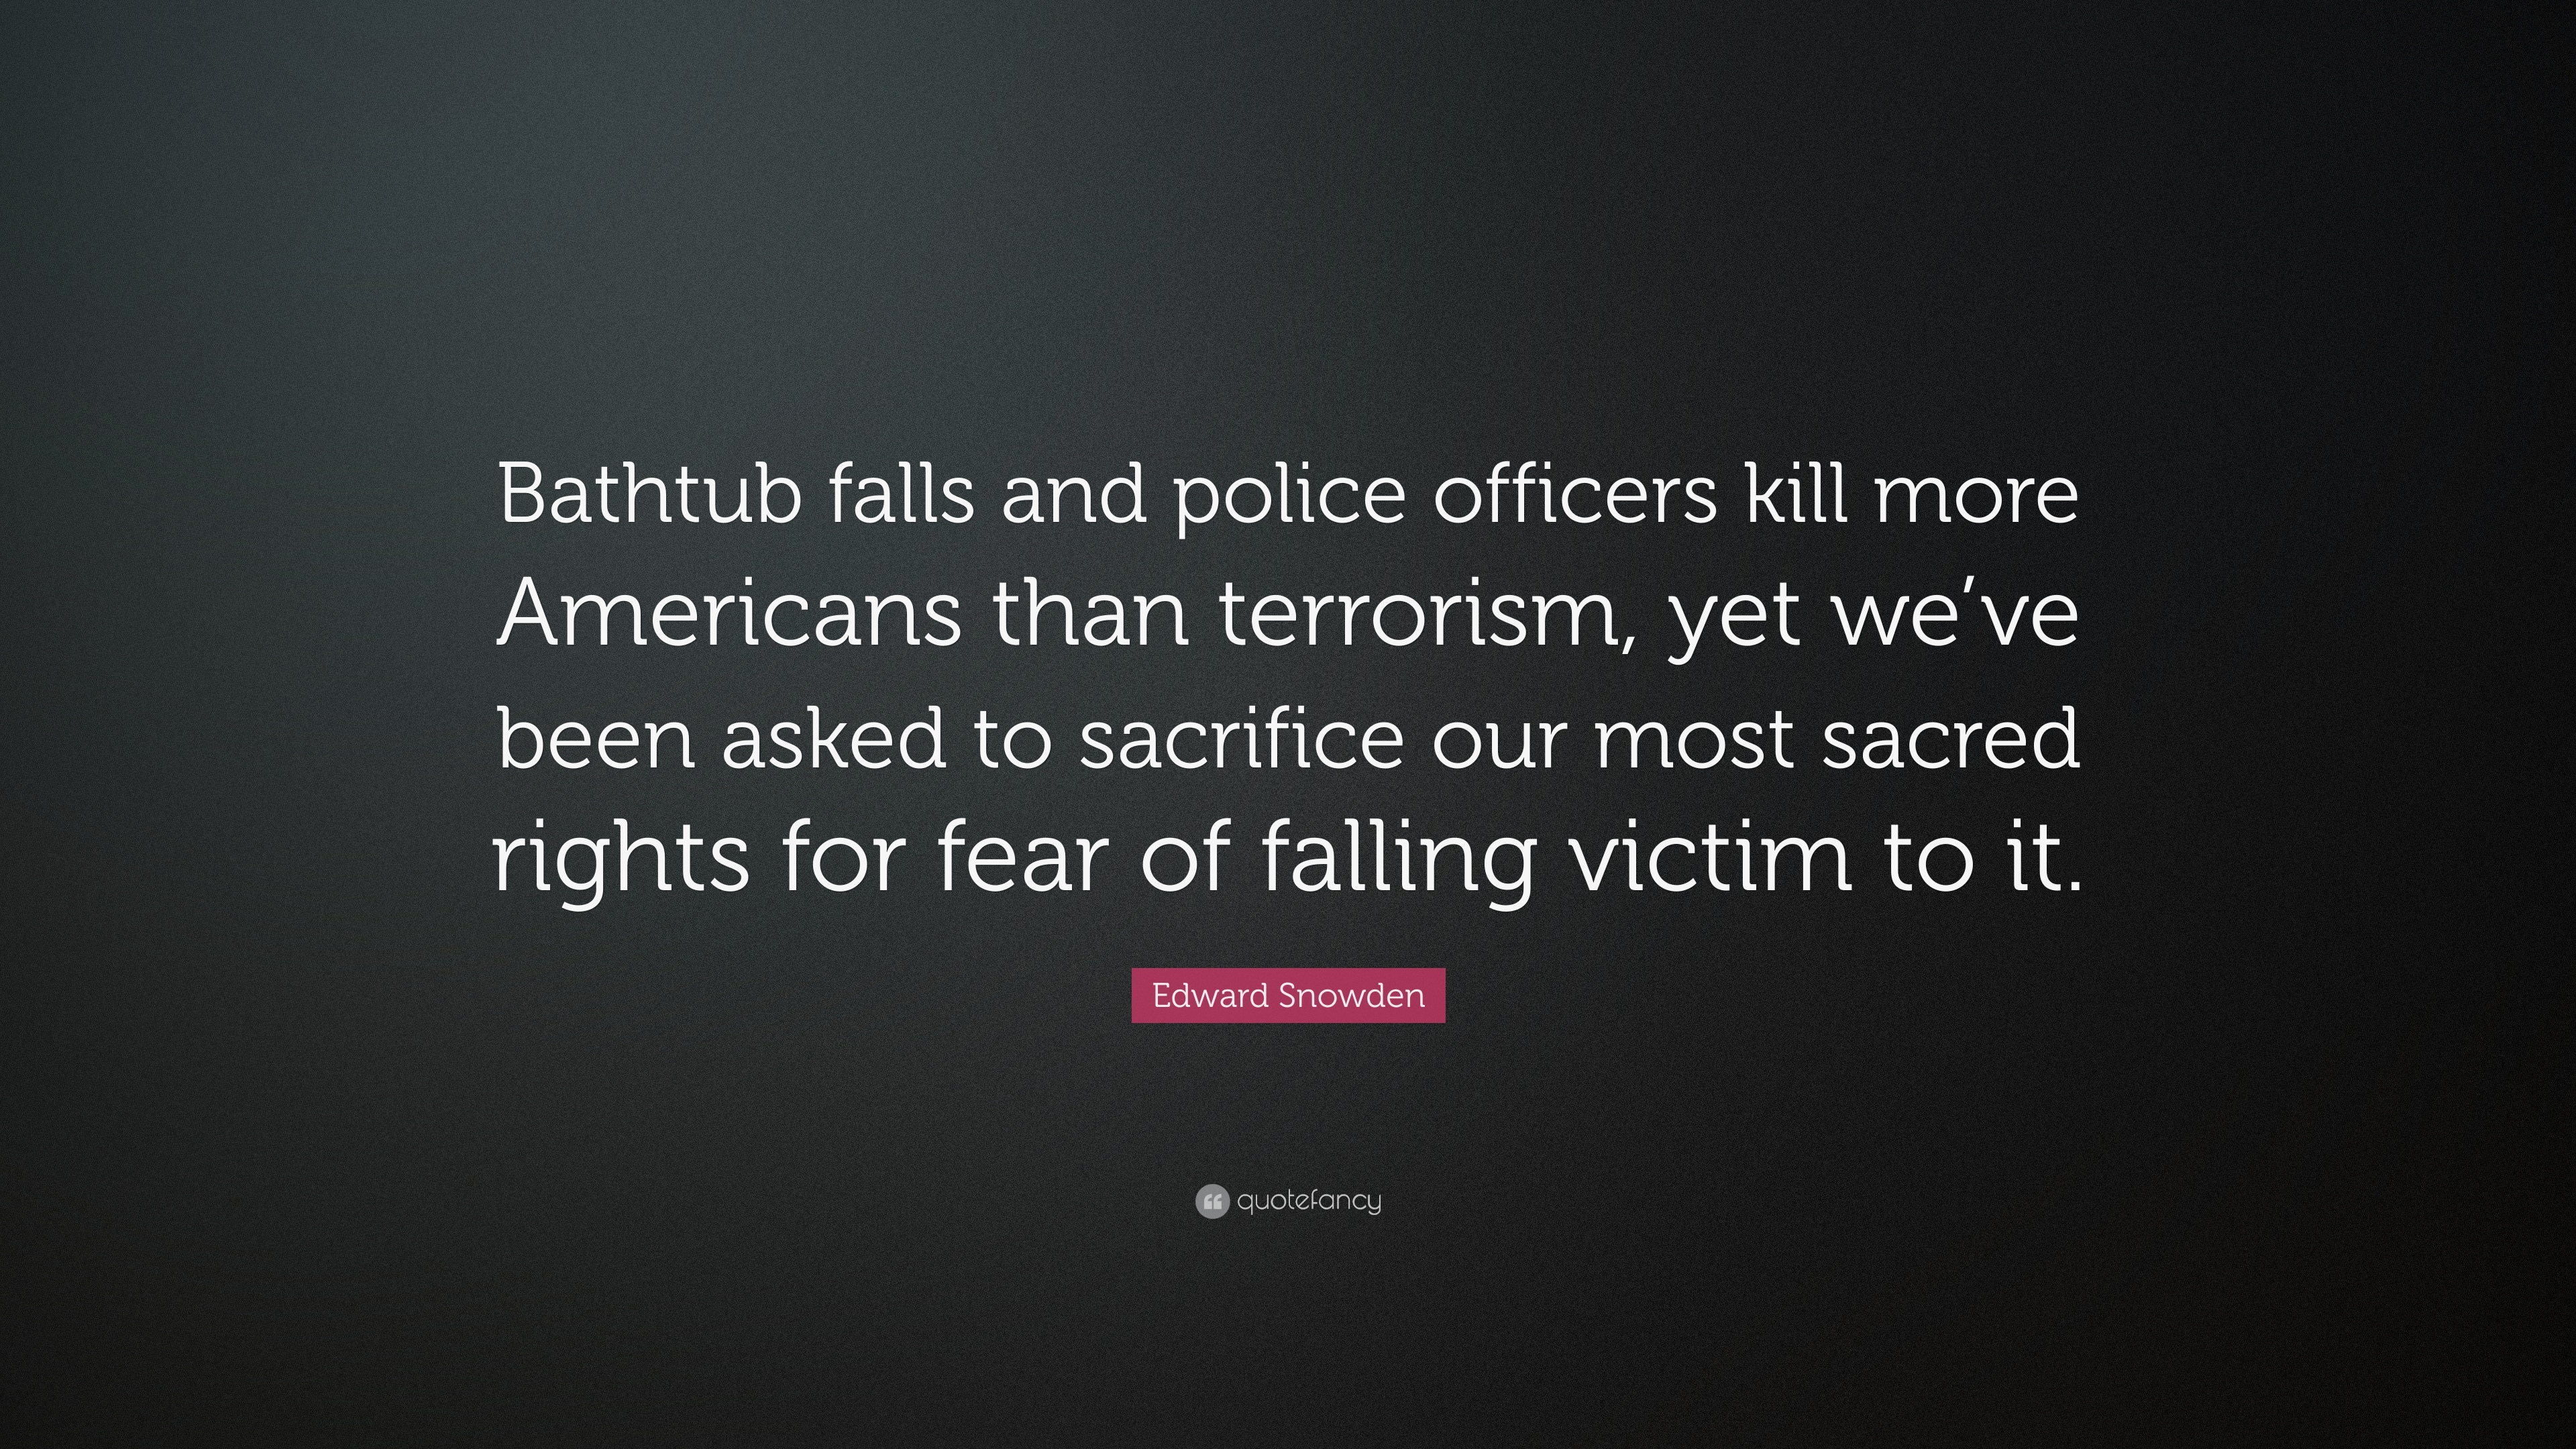 Edward Snowden Quote Bathtub Falls And Police Officers Kill More Americans Than Terrorism